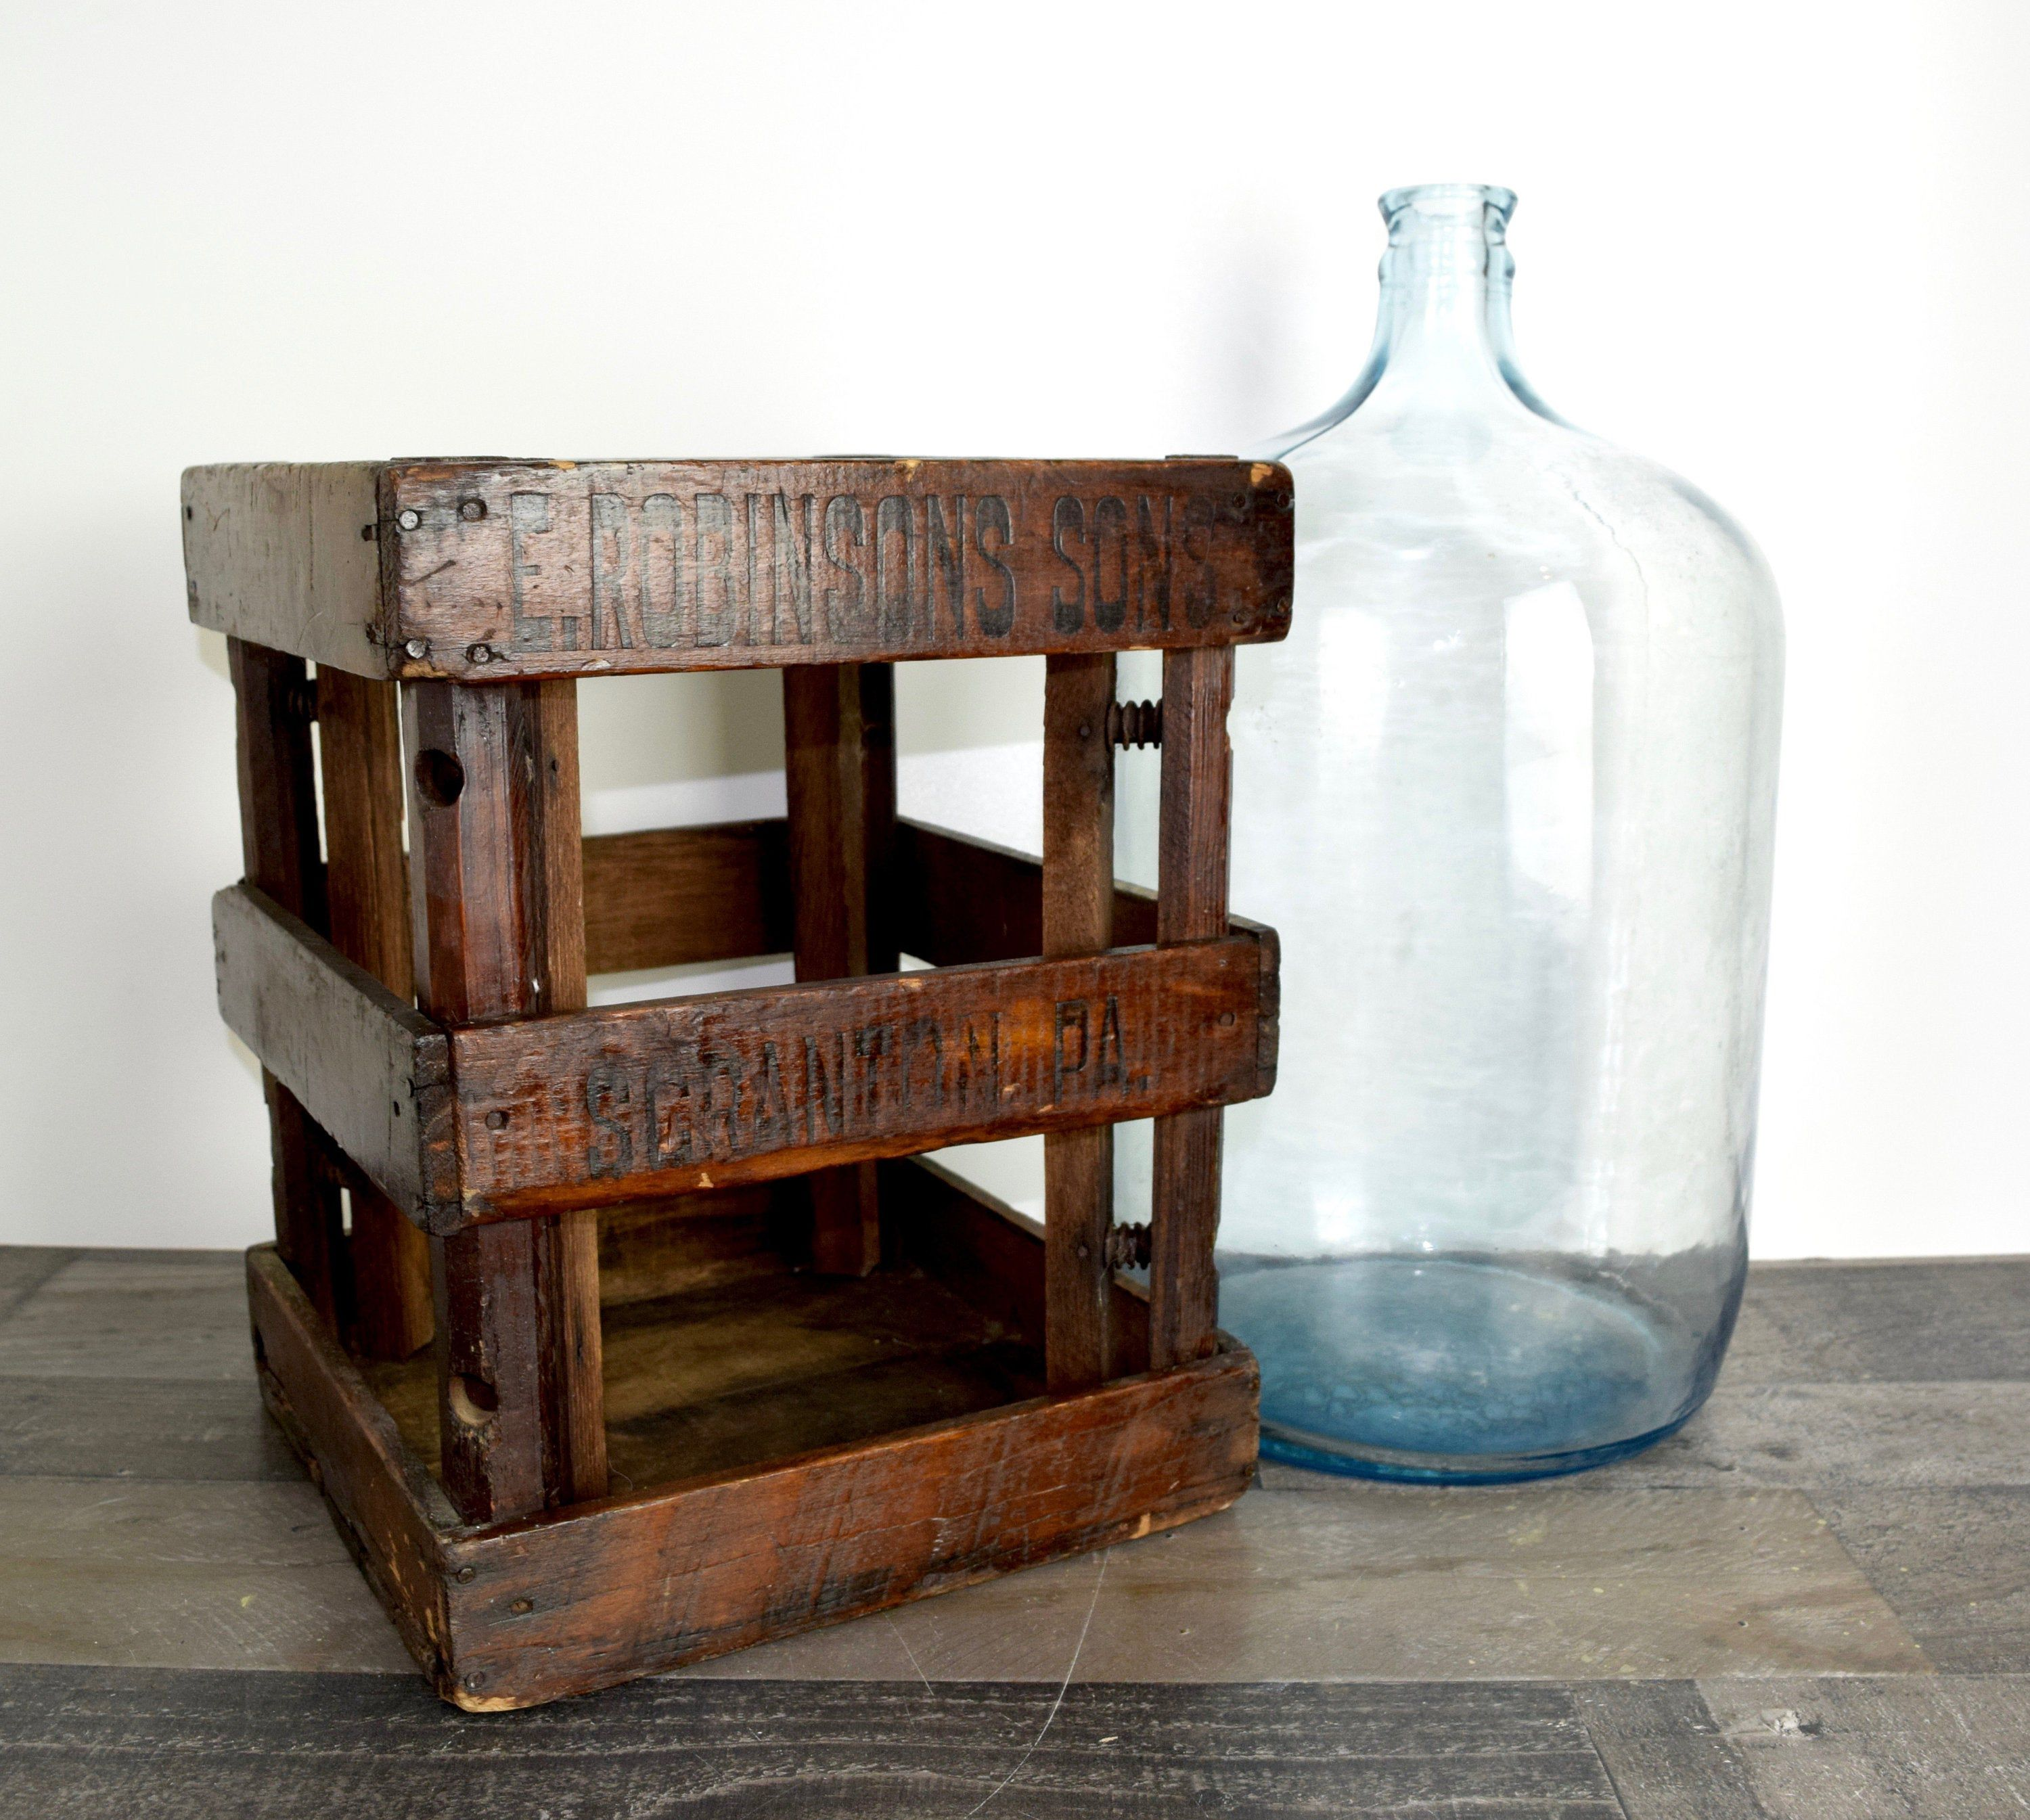 Rare Pre Prohibition E Robinson S Sons Scranton Pa Crate With Blue Carboy 1890 189 In 2020 Kitchen Jars Storage Rustic Dining Furniture Dining Furniture Makeover